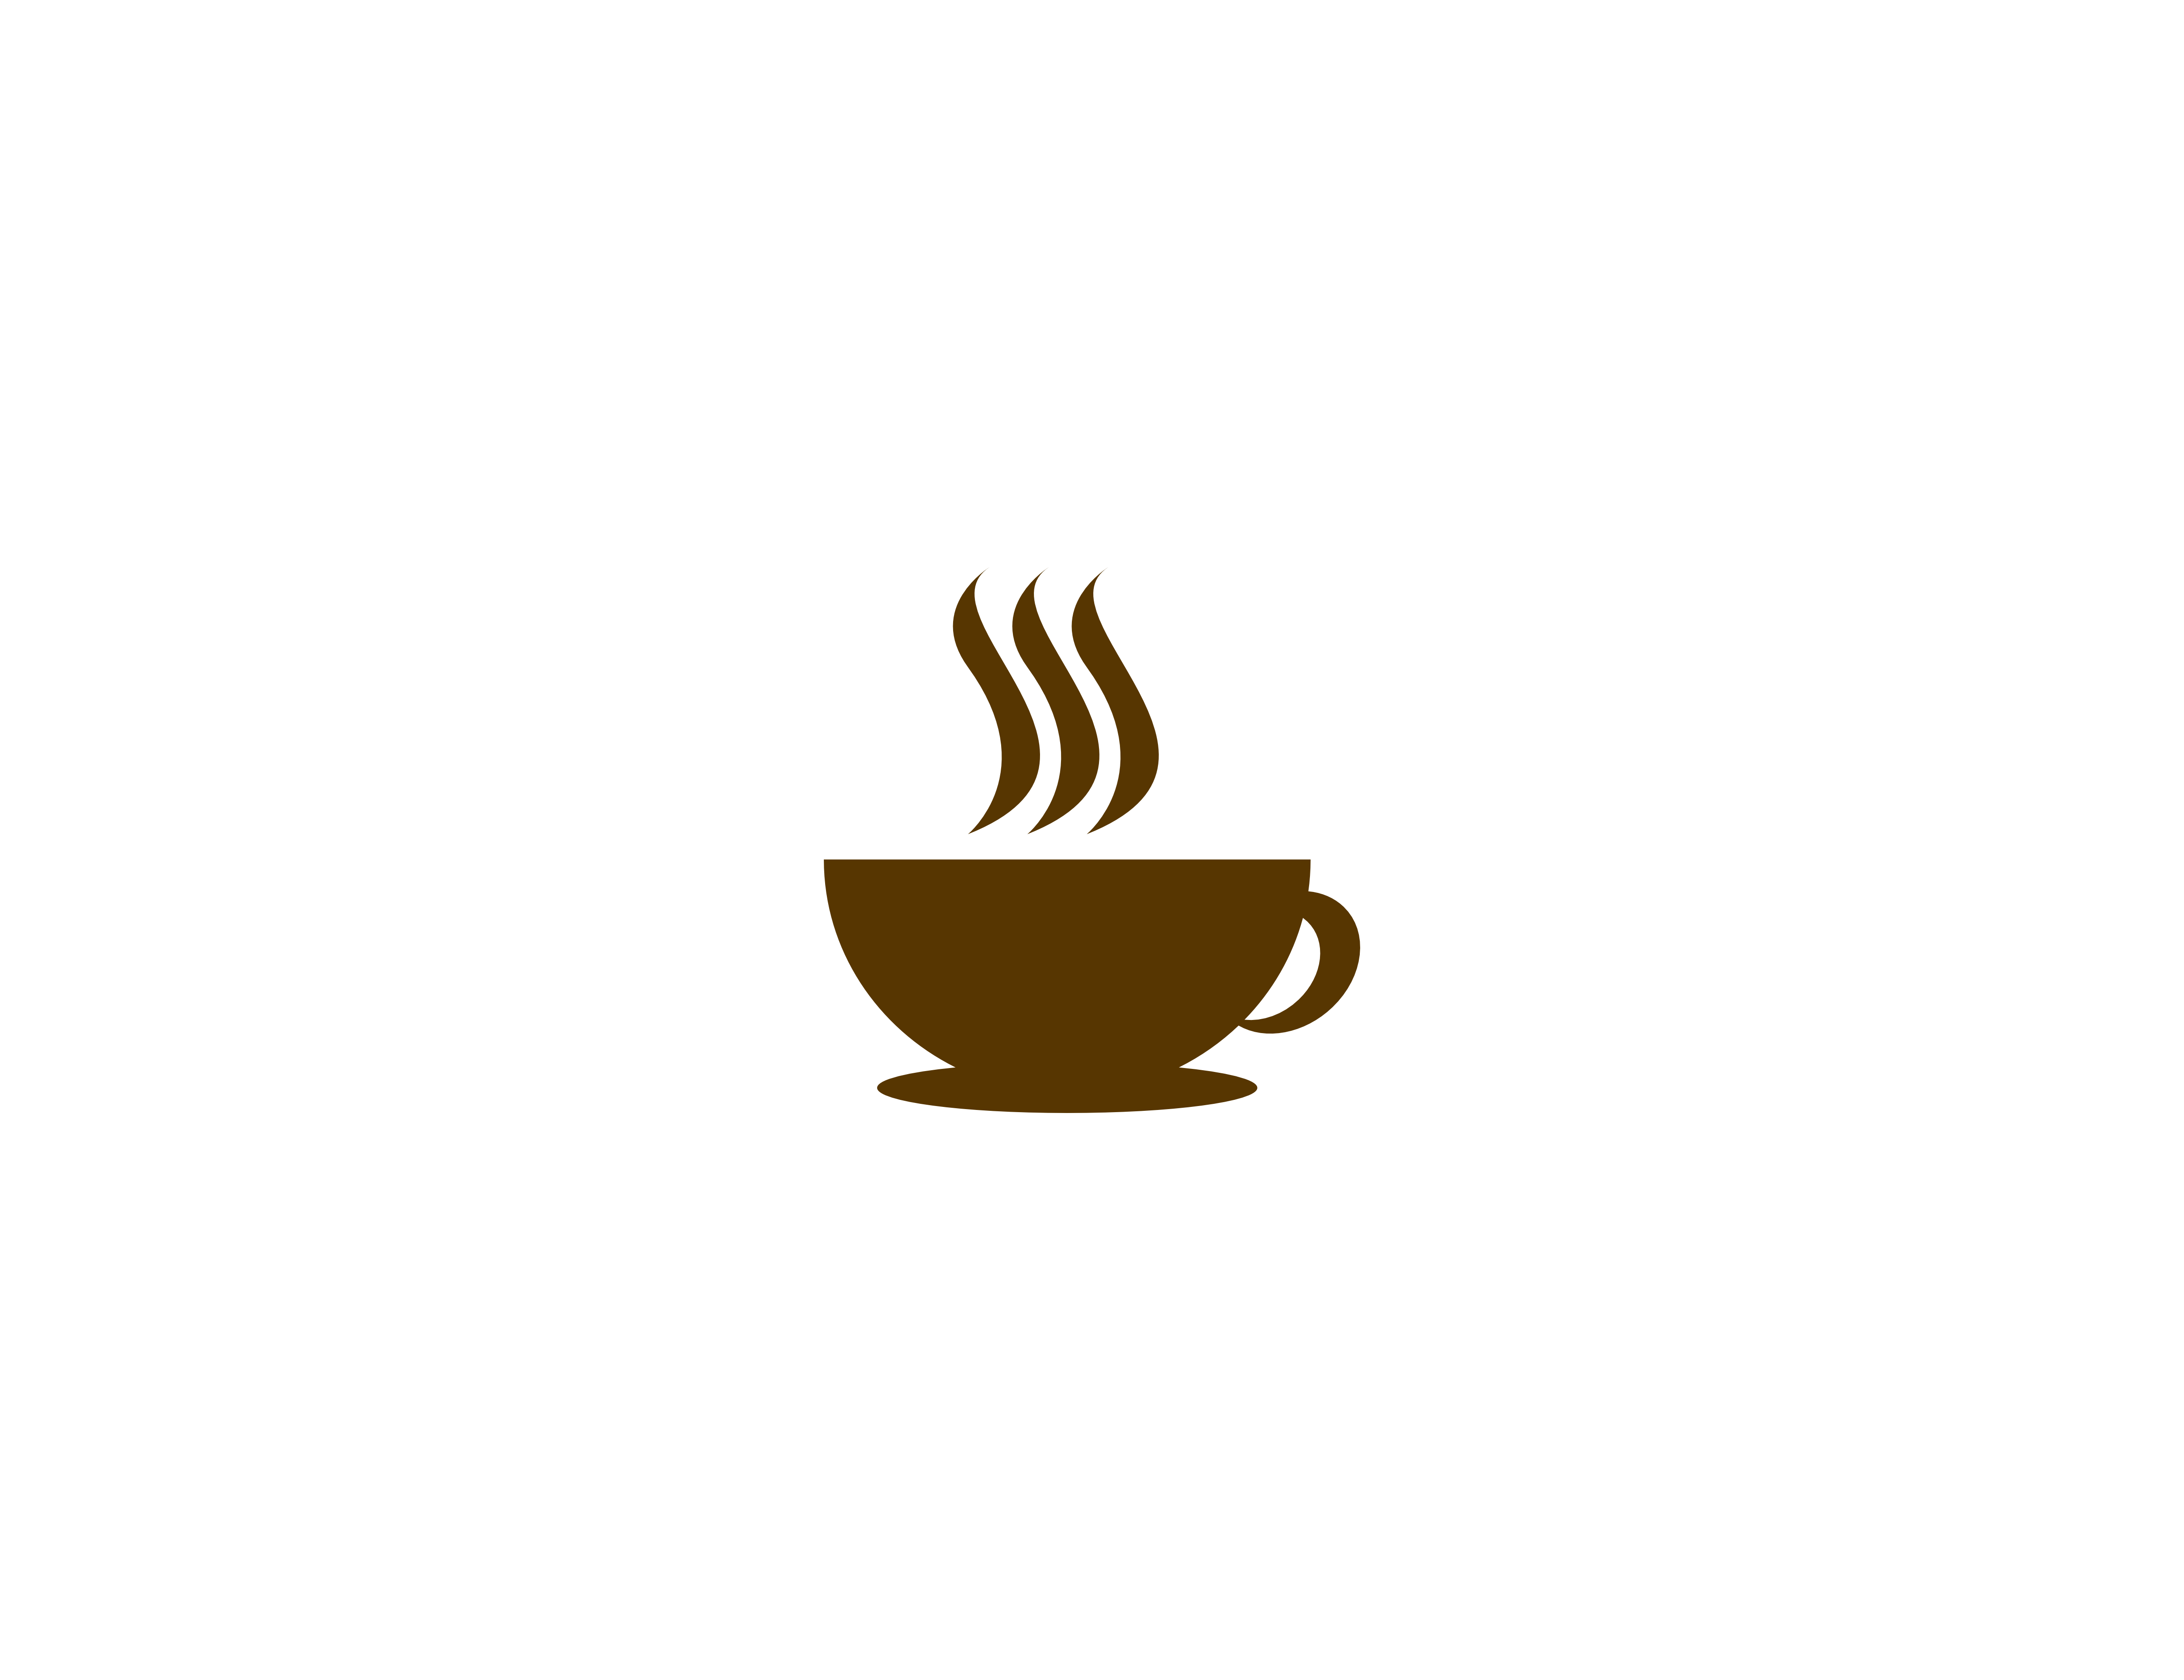 Download Free Coffee Logo Graphic By Meisuseno Creative Fabrica for Cricut Explore, Silhouette and other cutting machines.